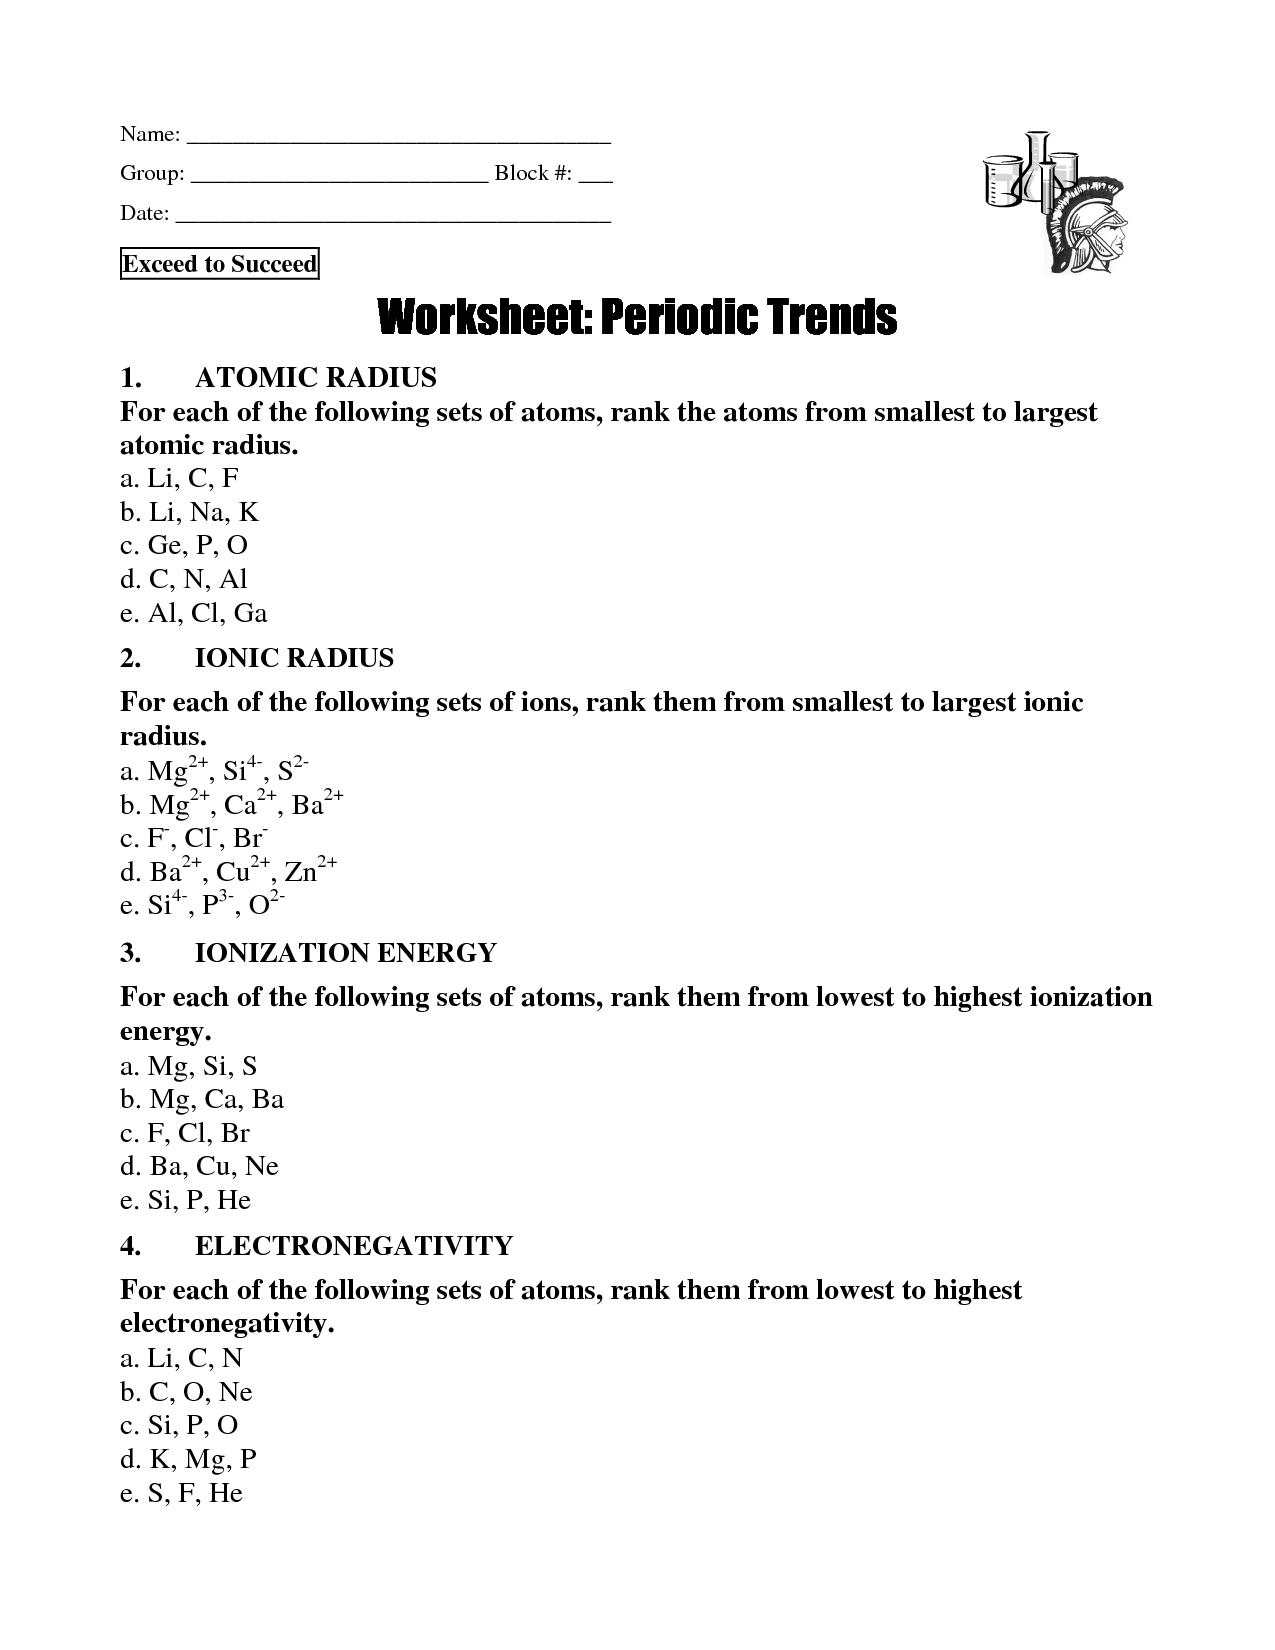 48 PERIODIC TABLE TRENDS WORKSHEET PDF, WORKSHEET PERIODIC TABLE ...